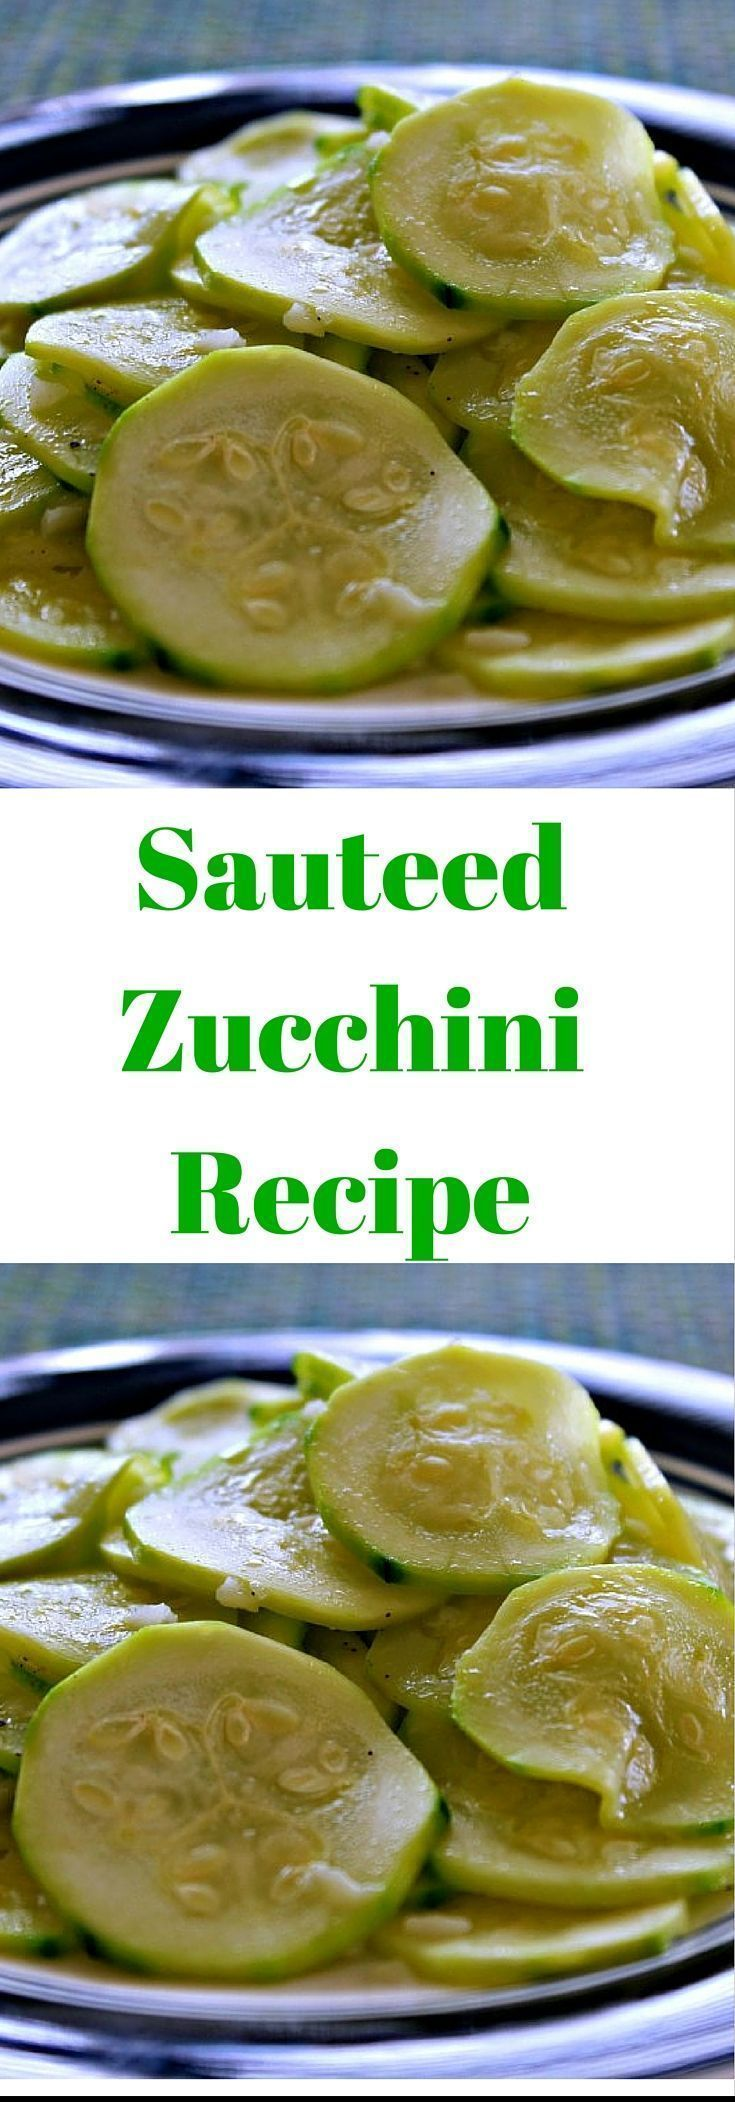 ideas about Sauteed Zucchini Recipes on Pinterest | Pan Fried Zucchini ...